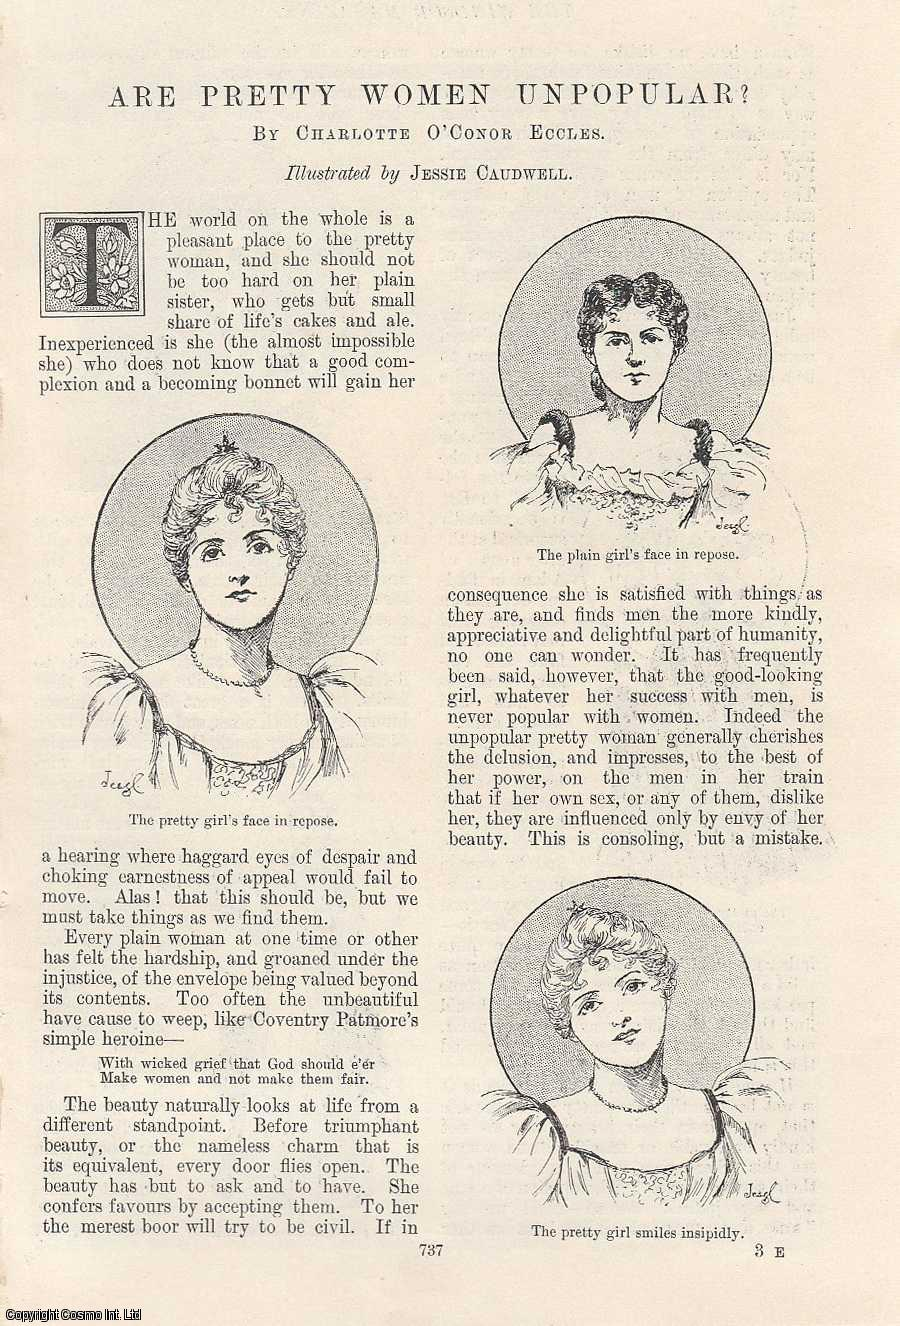 Are Pretty Women Unpopular? Illustrated by Jessie Caudwell., Eccles, Charlotte O'Conor